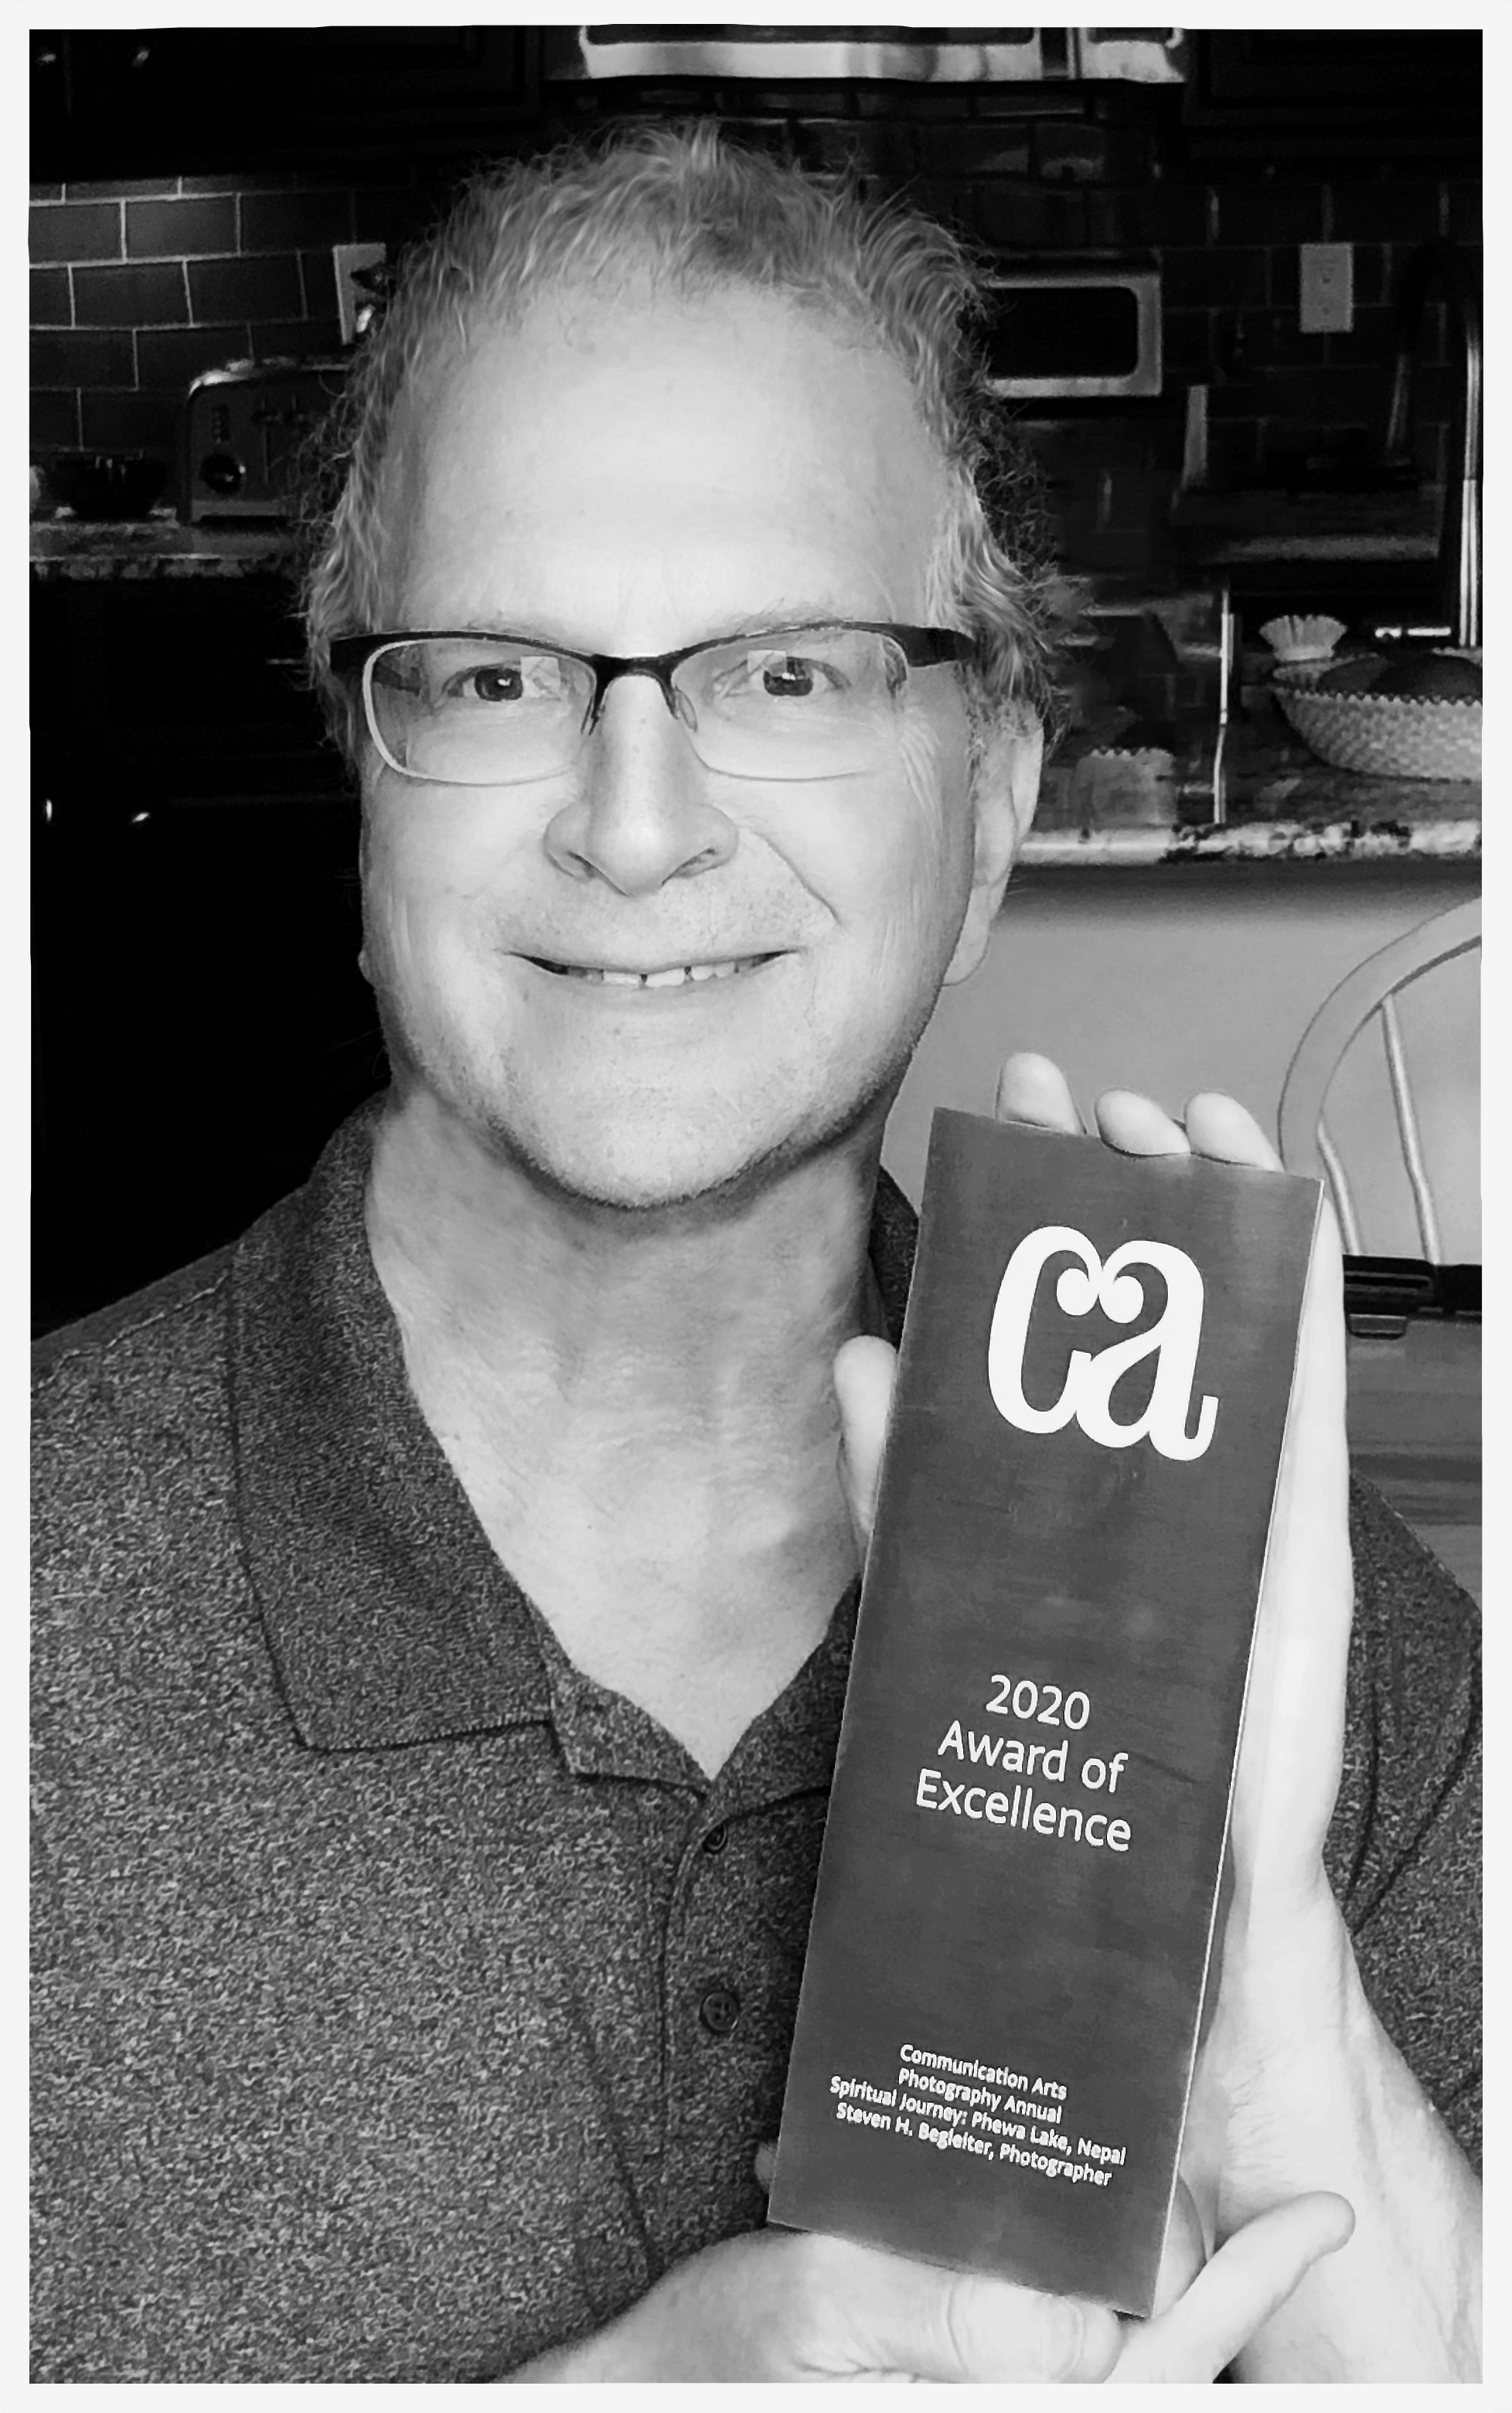 Me and my CA award